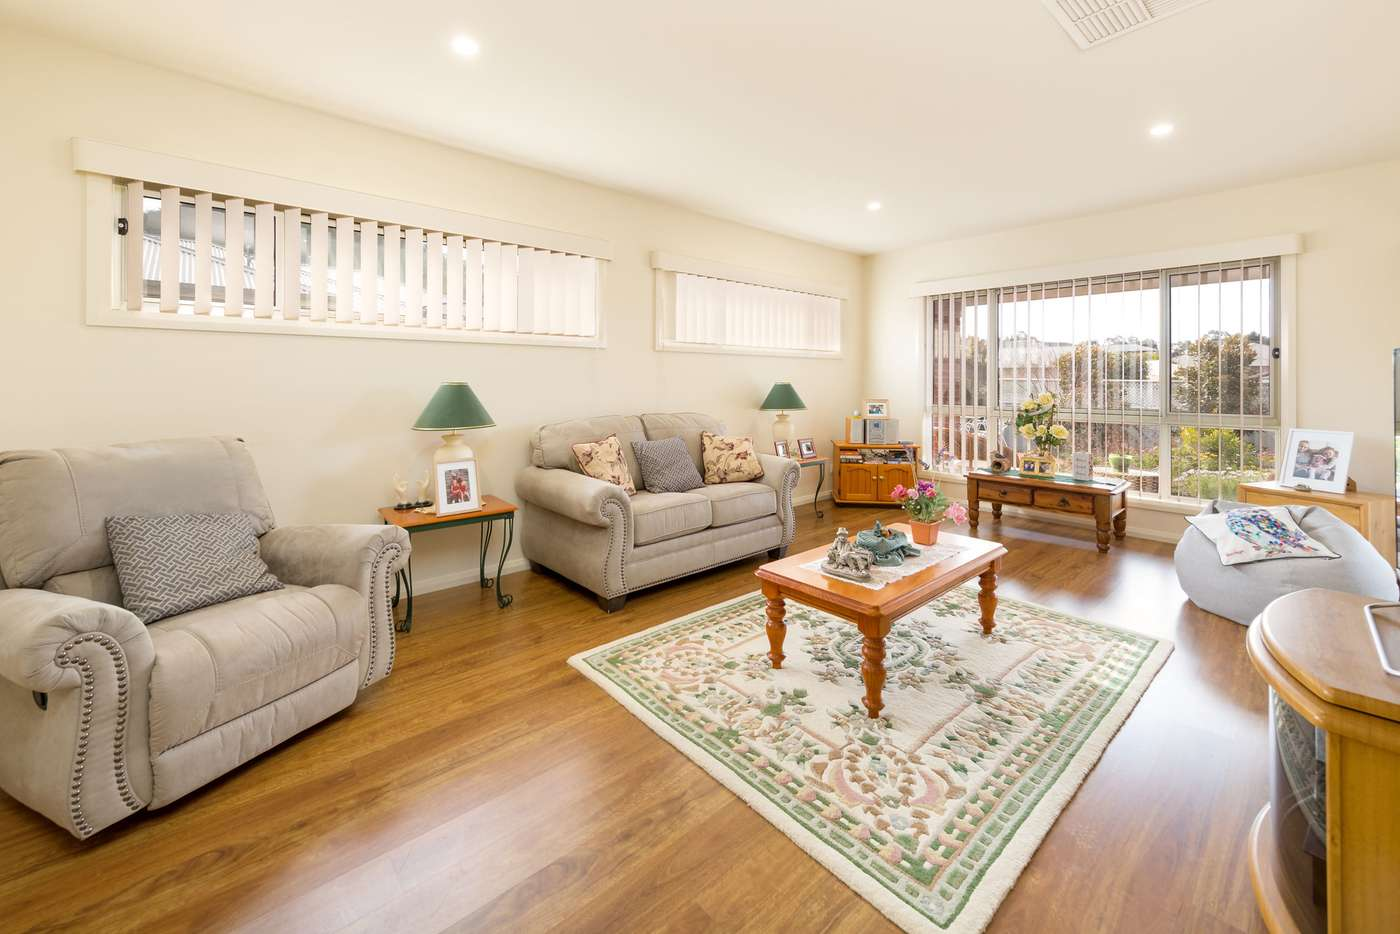 Sixth view of Homely house listing, 4 Gillman Terrace, Wodonga VIC 3690